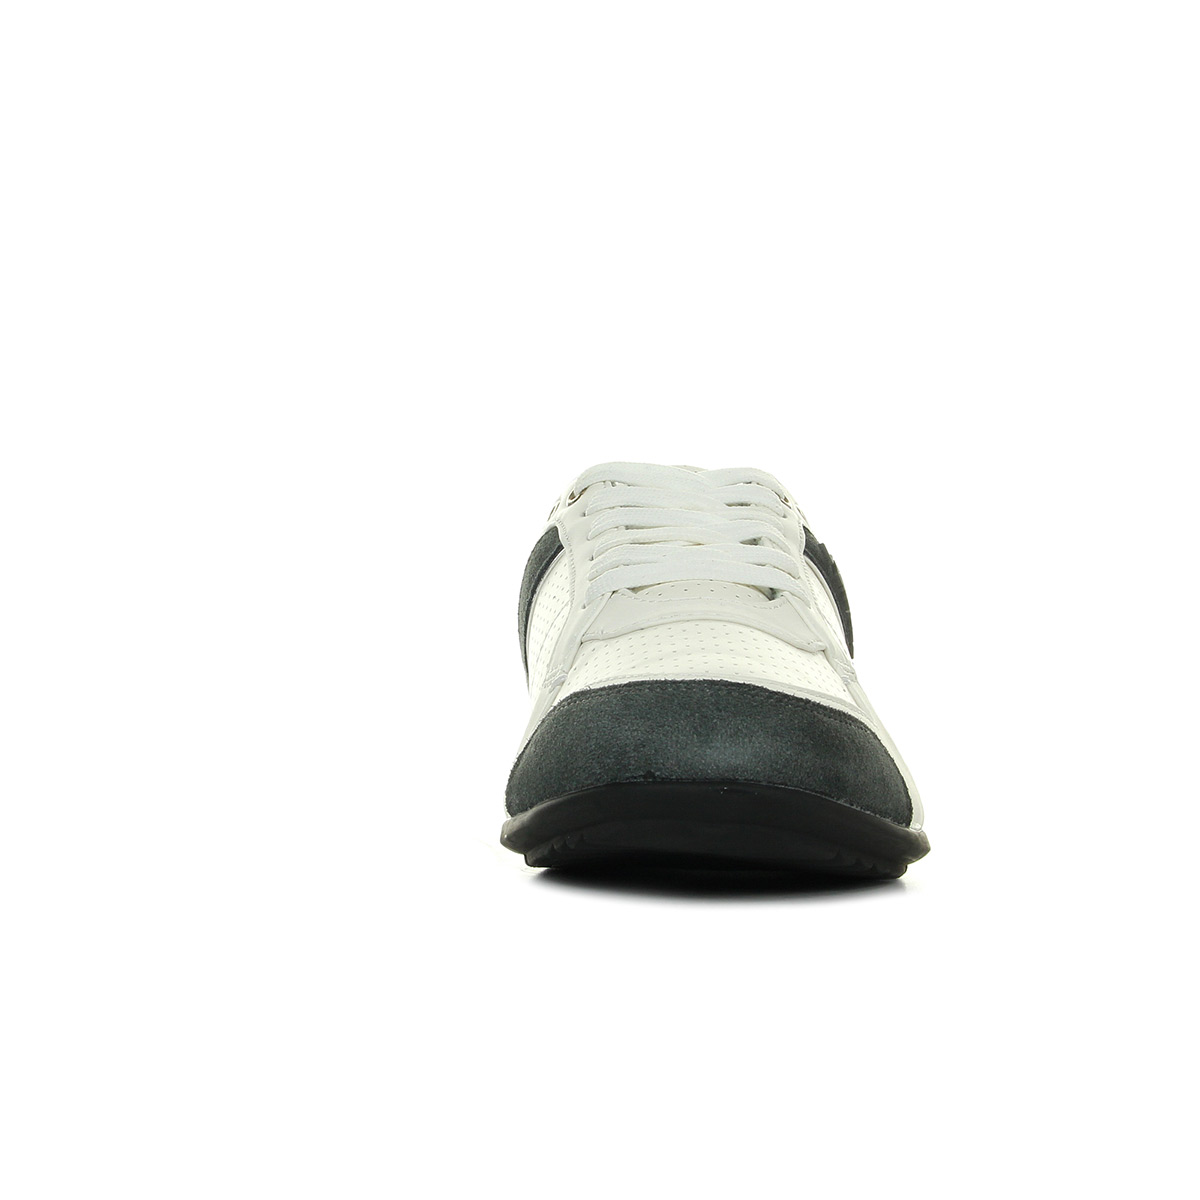 Versace Jeans Linea Fondo Tommy Dis1 Coated Holed Suede E0YRBSB170011003, Baskets mode homme